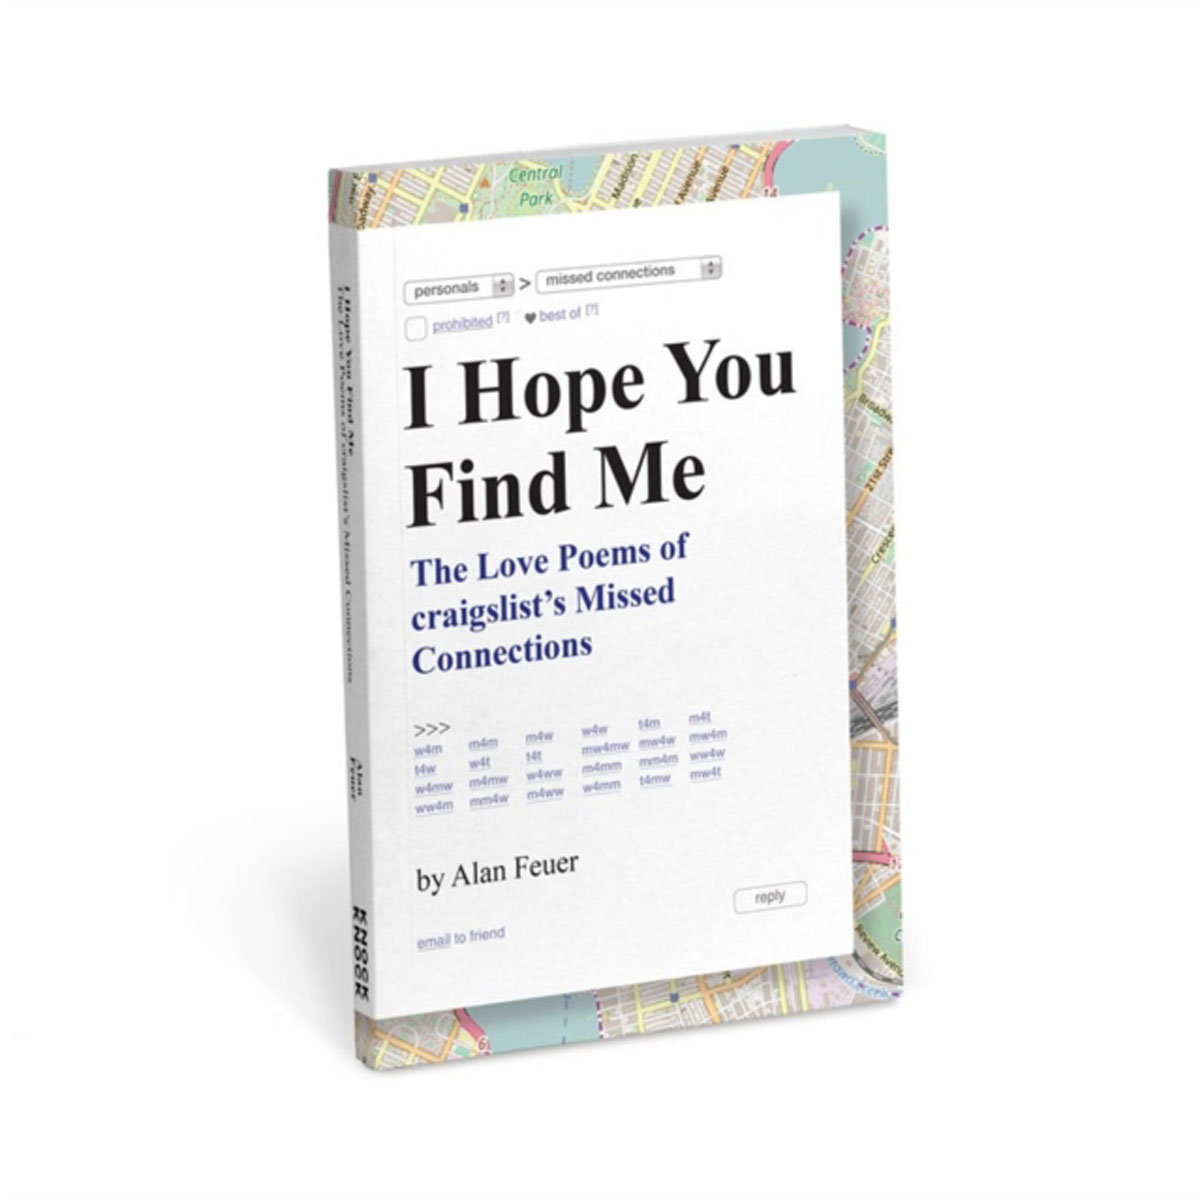 I Hope You Find Me: The Love Poems of craigslist's Missed Connections aoa vol 1 angel s knock a ver release date 2017 01 03